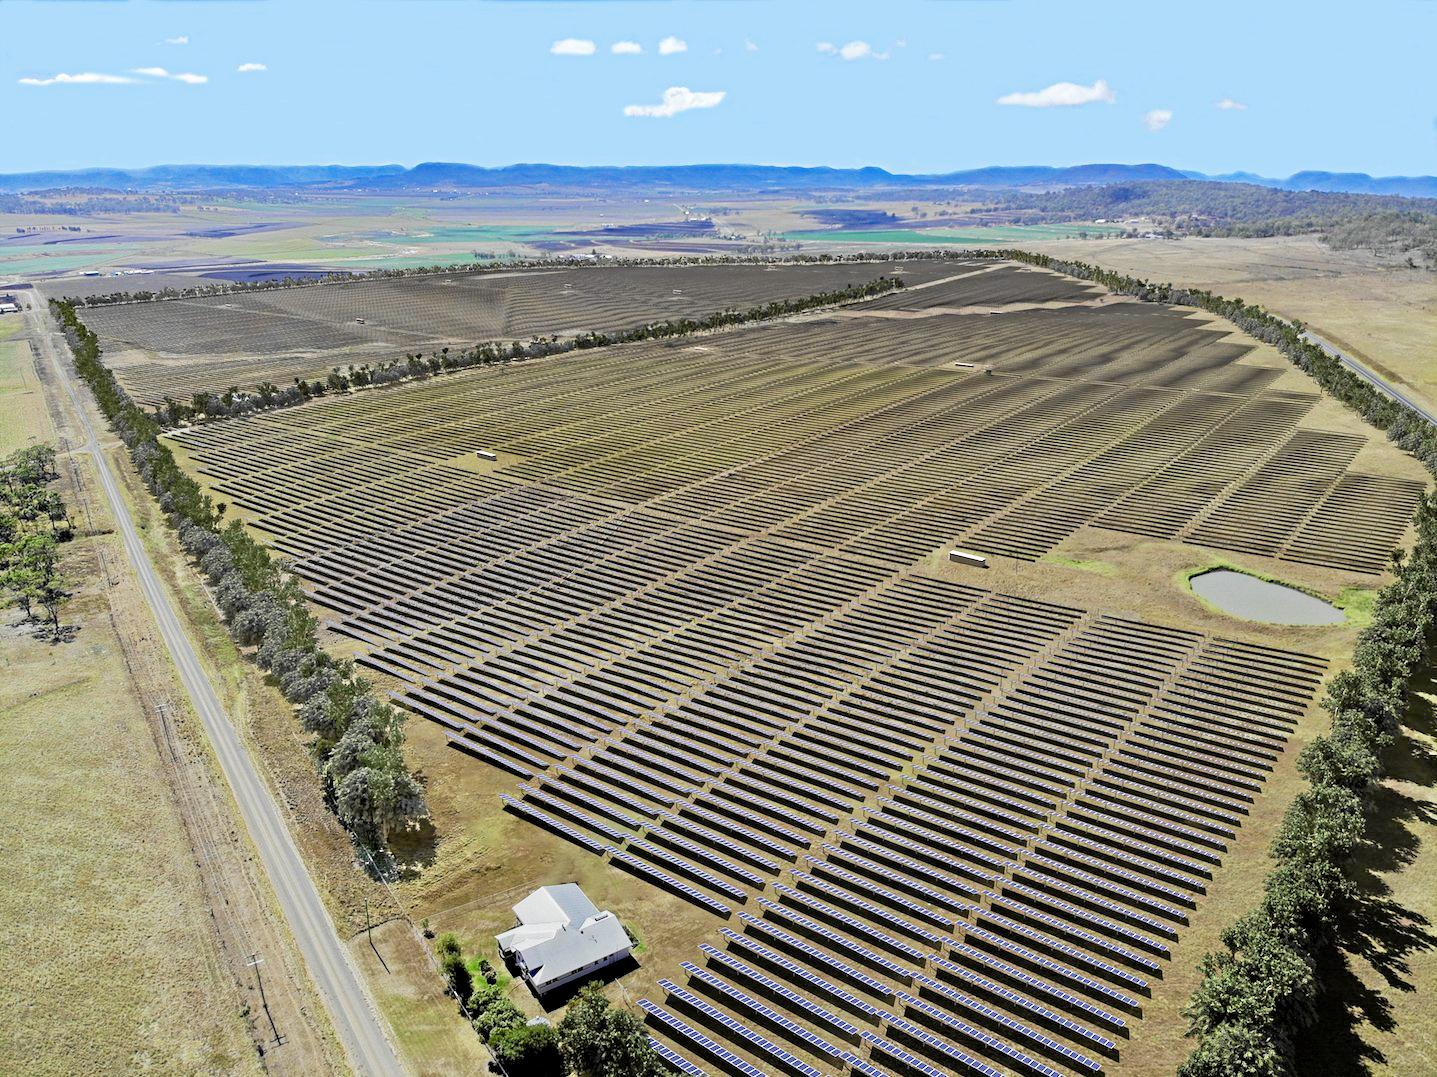 Artist's impression of the Warwick Solar Farm.